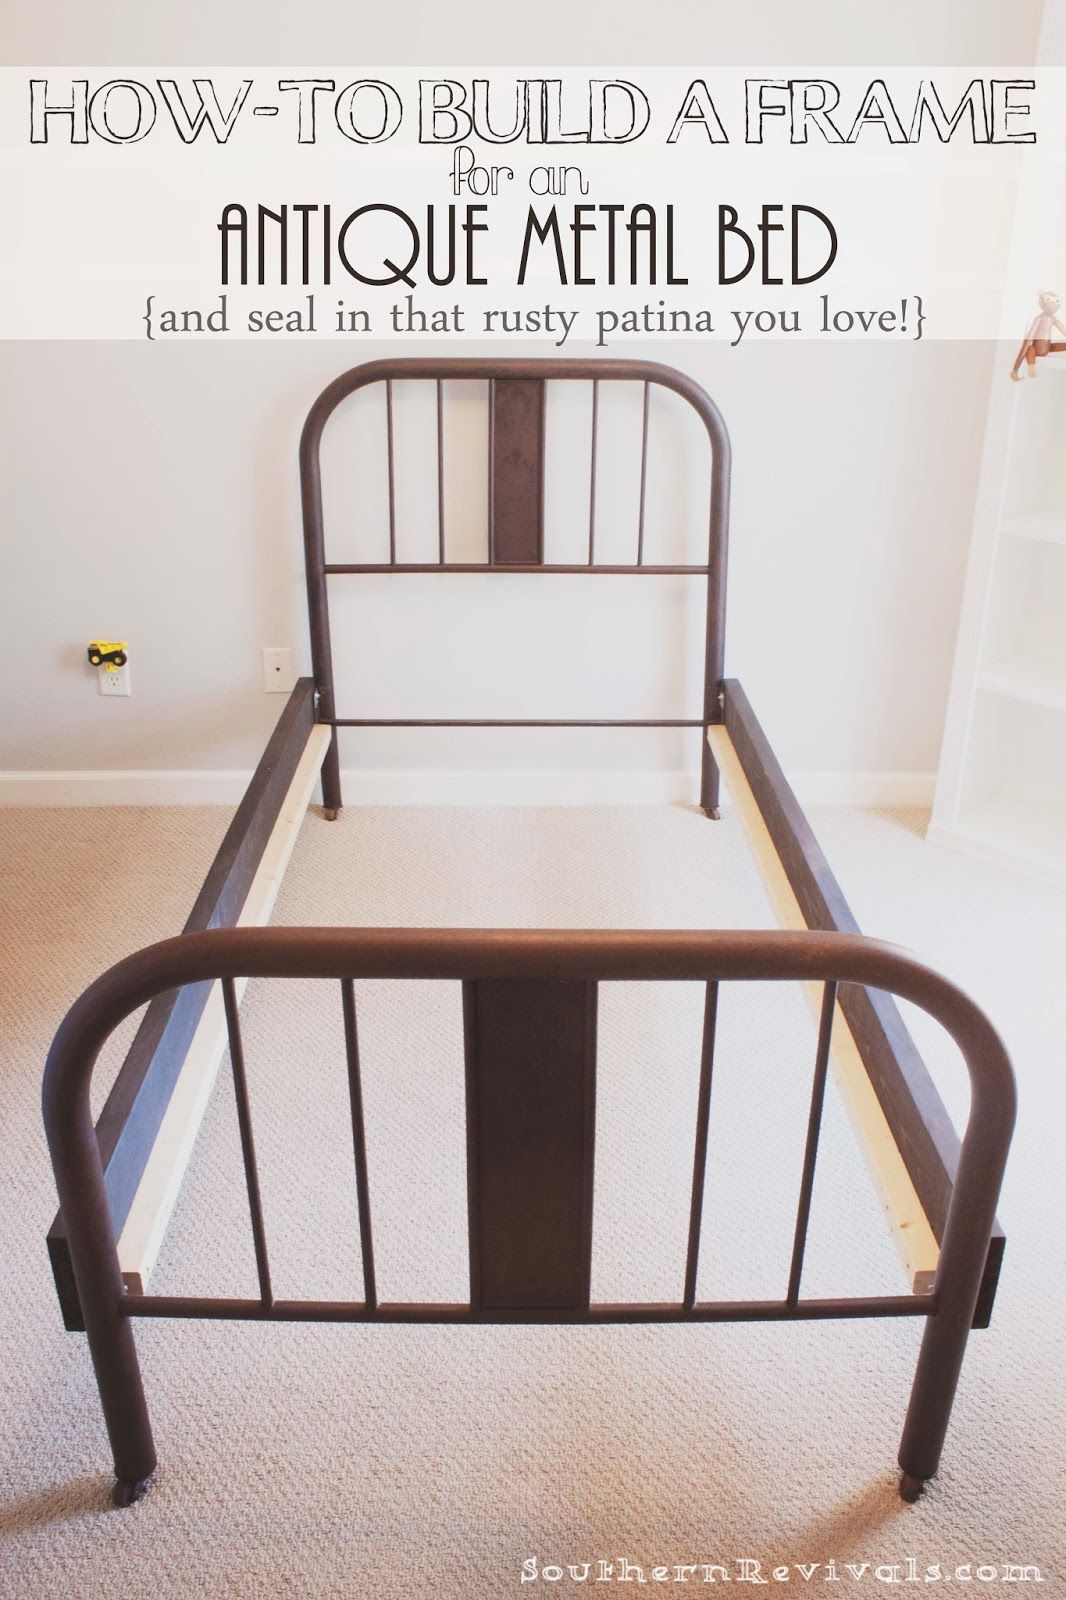 How To Make A Frame For An Antique Metal Bed Metal Beds